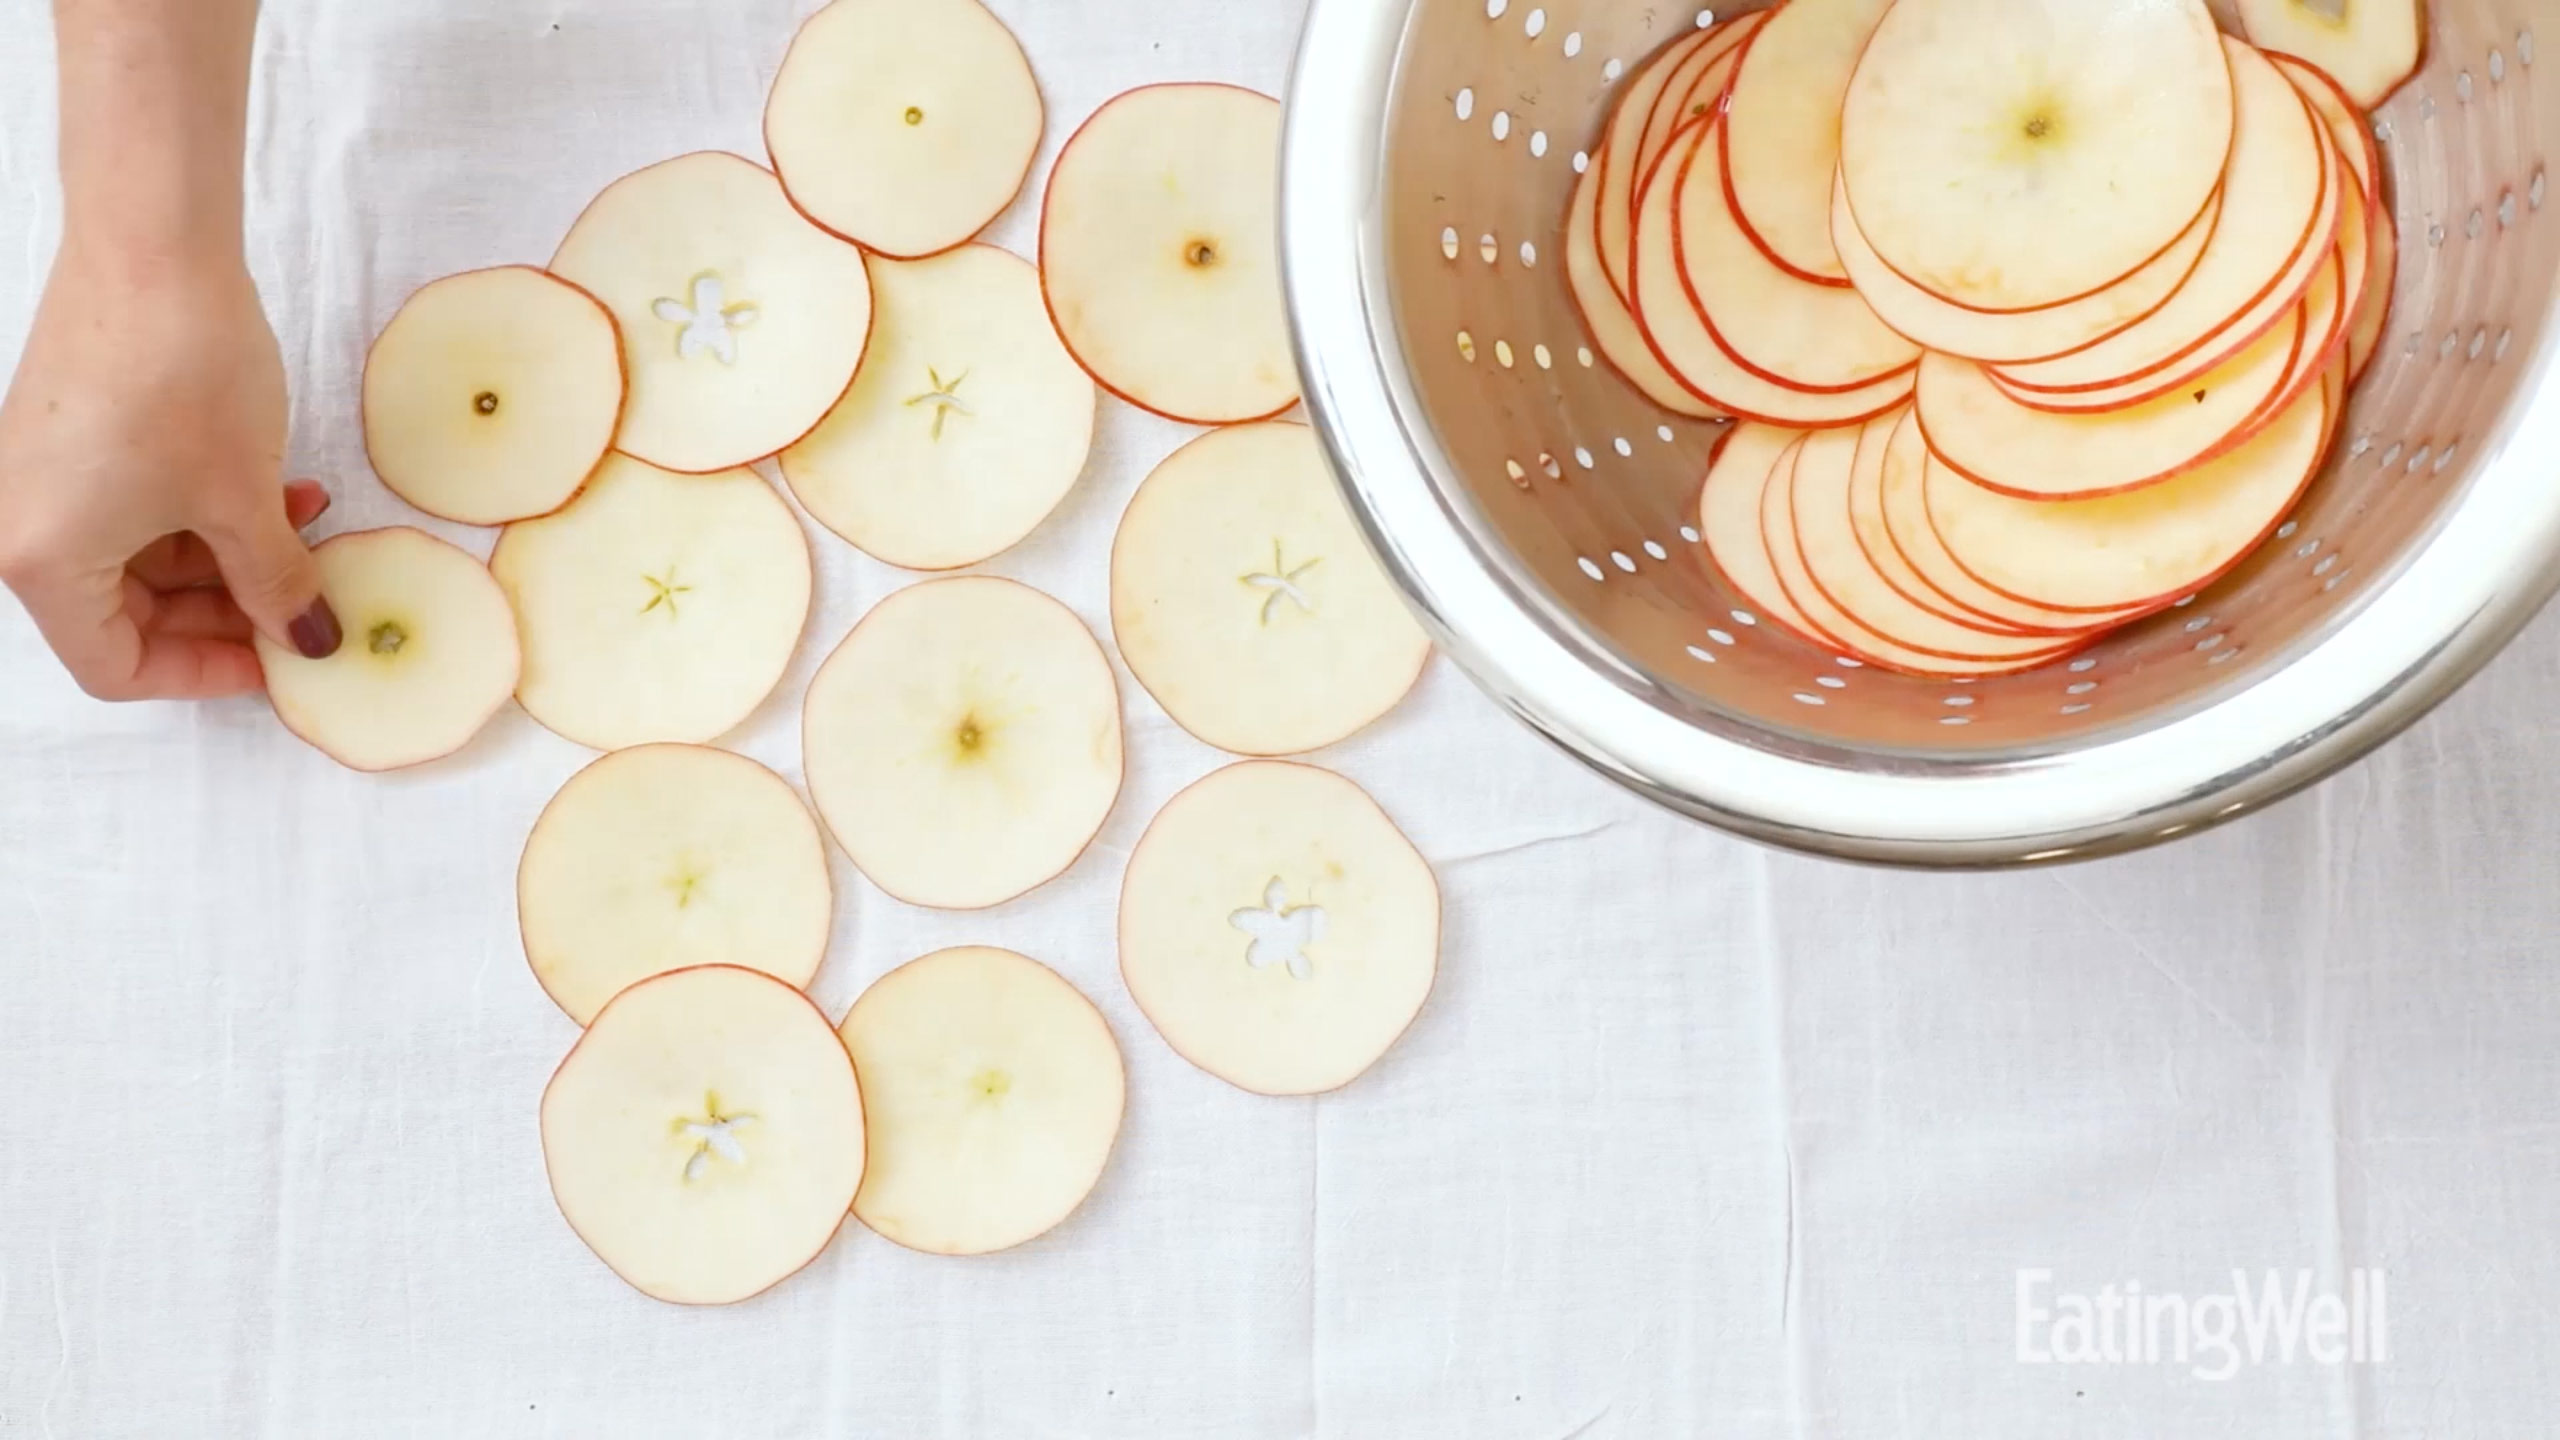 drying apple slices on a cloth